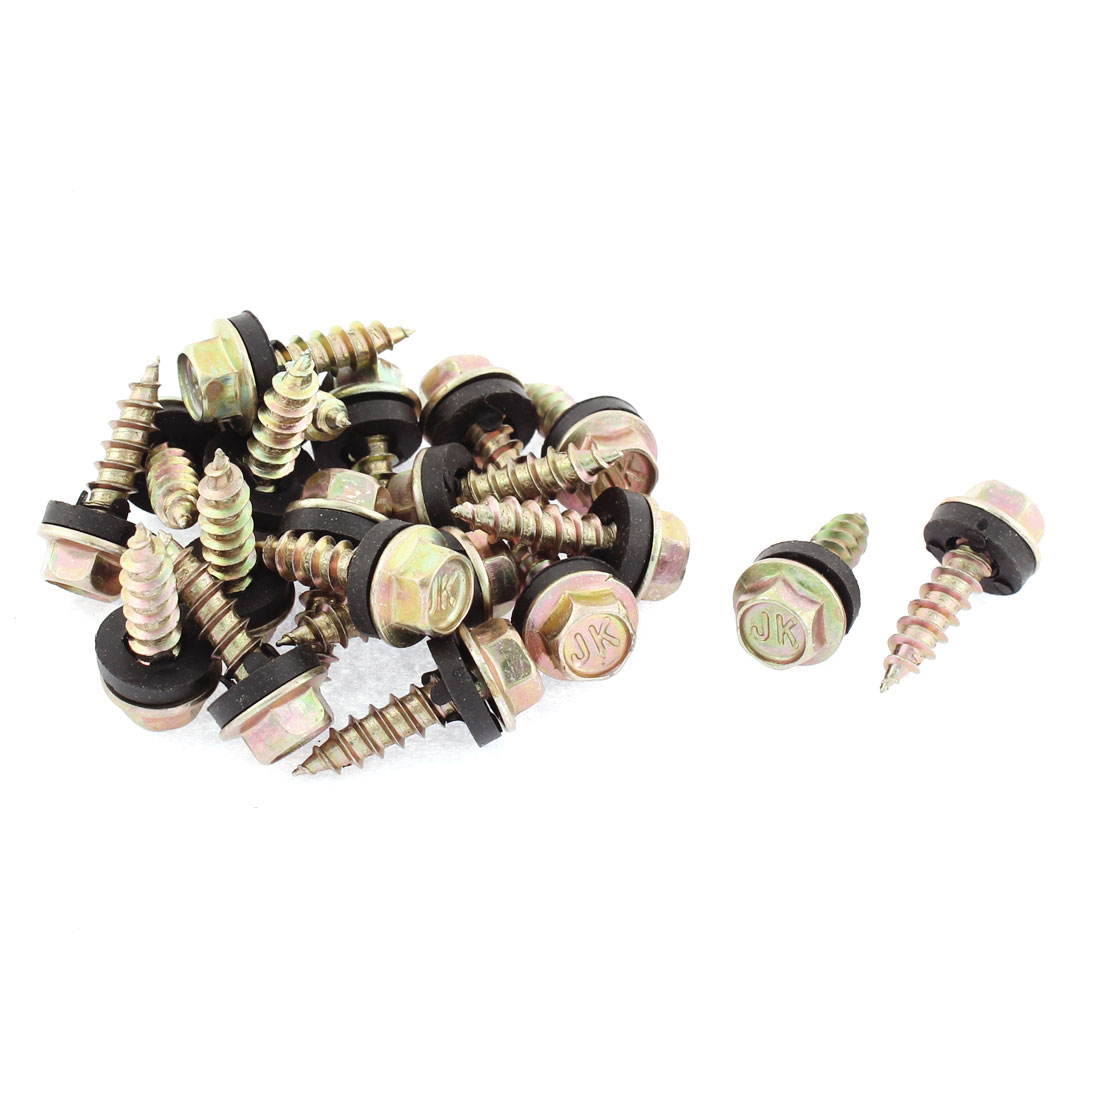 20 Pcs Rubber Washer M5 x 20mm Male Thread Hex Head Self Tapping Screw Fastener 24mm Long